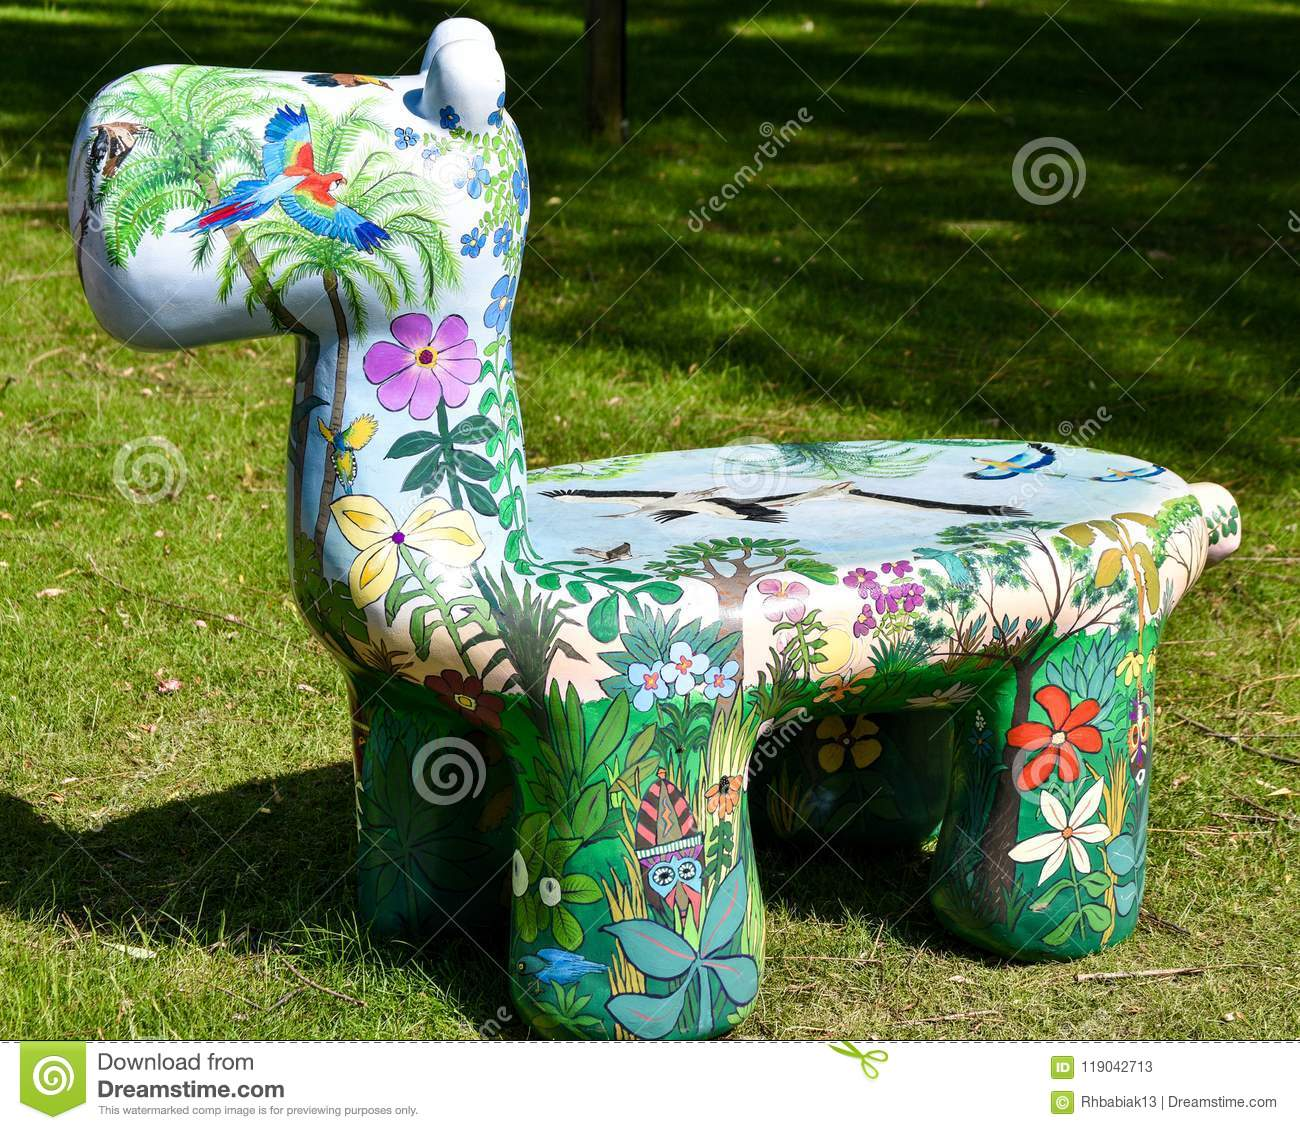 Artistically Painted Animal Bench at Zoo